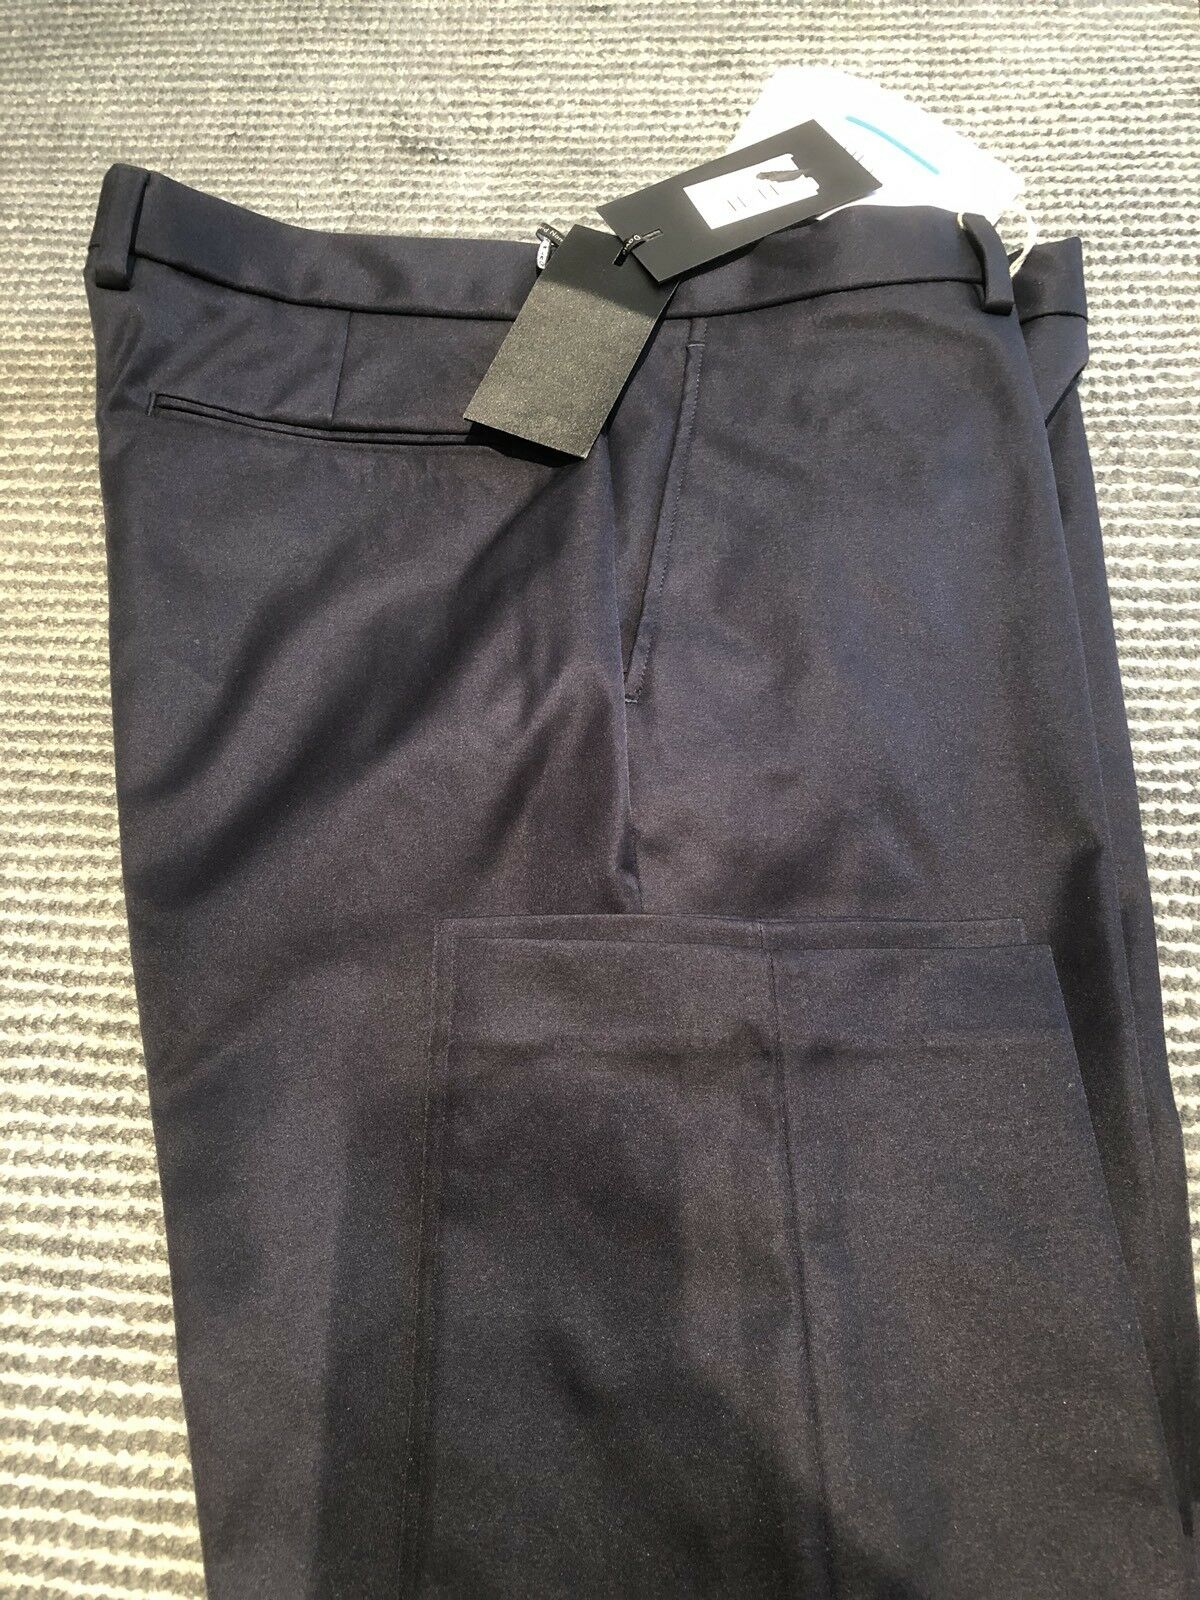 DAVID NAMAN PANTS TROUSERS NAVY blueE 32 NEW, Best Pants Ever - REDUCED